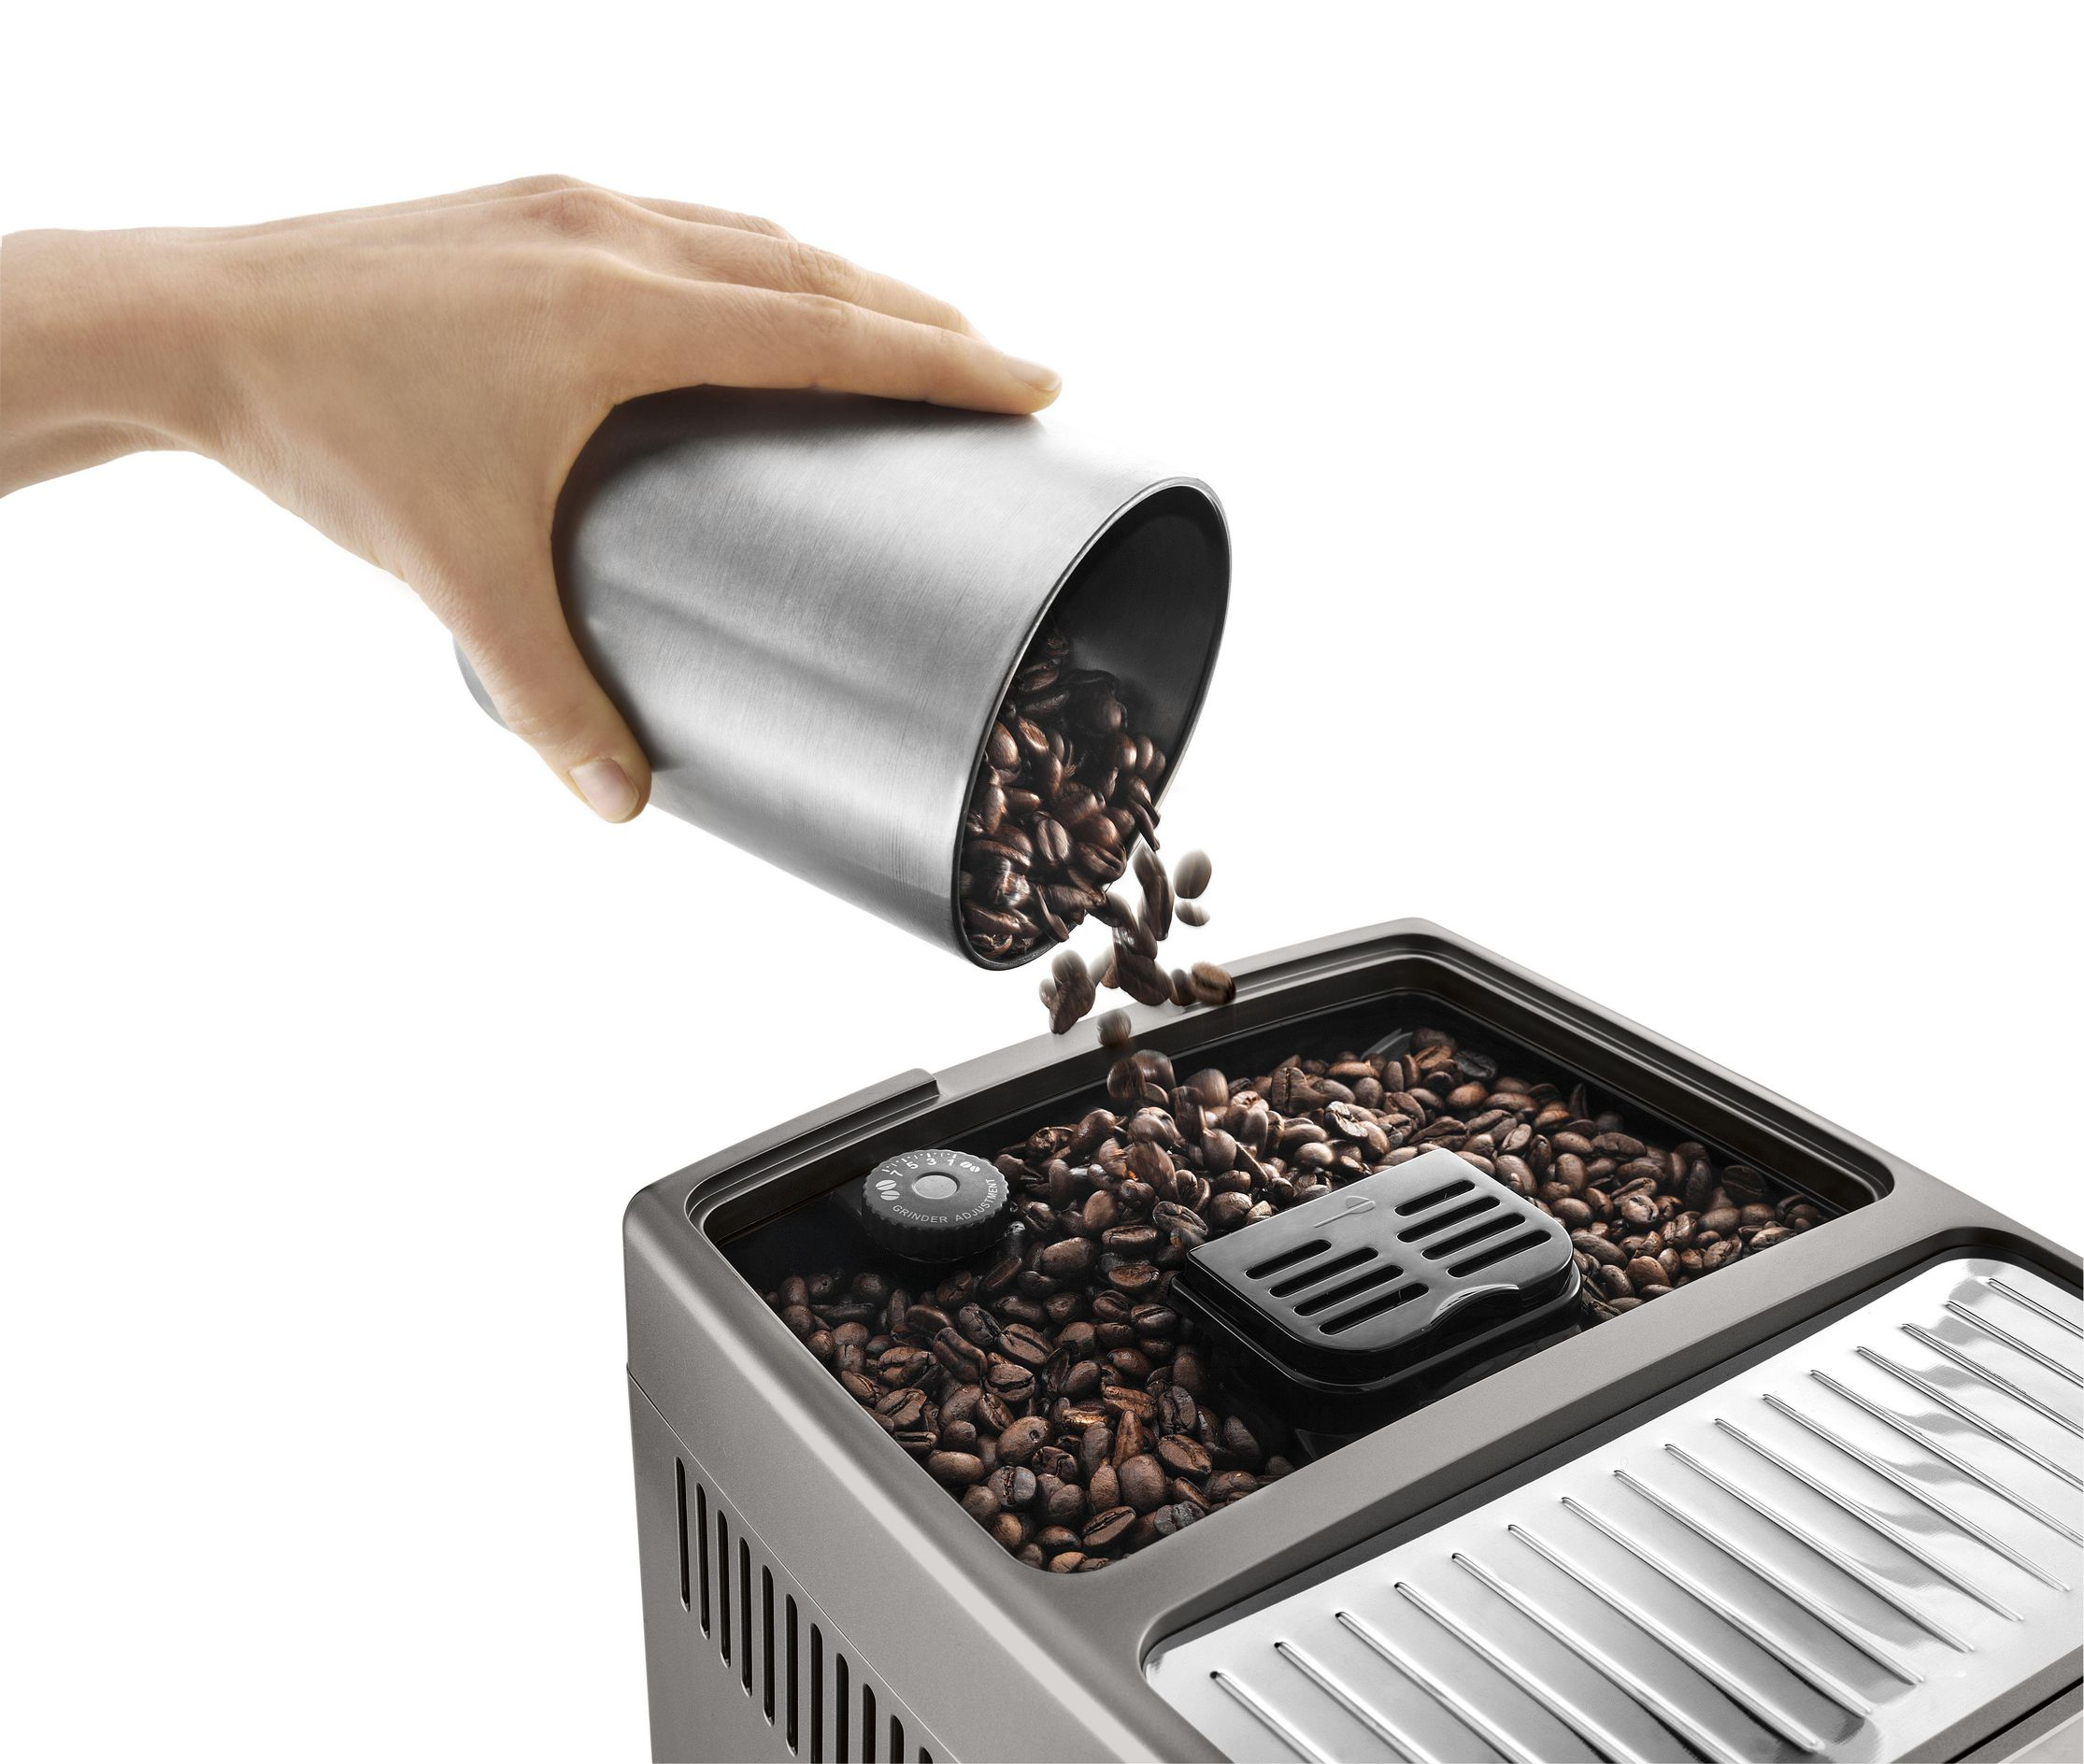 pouring coffee beans into a coffee machine